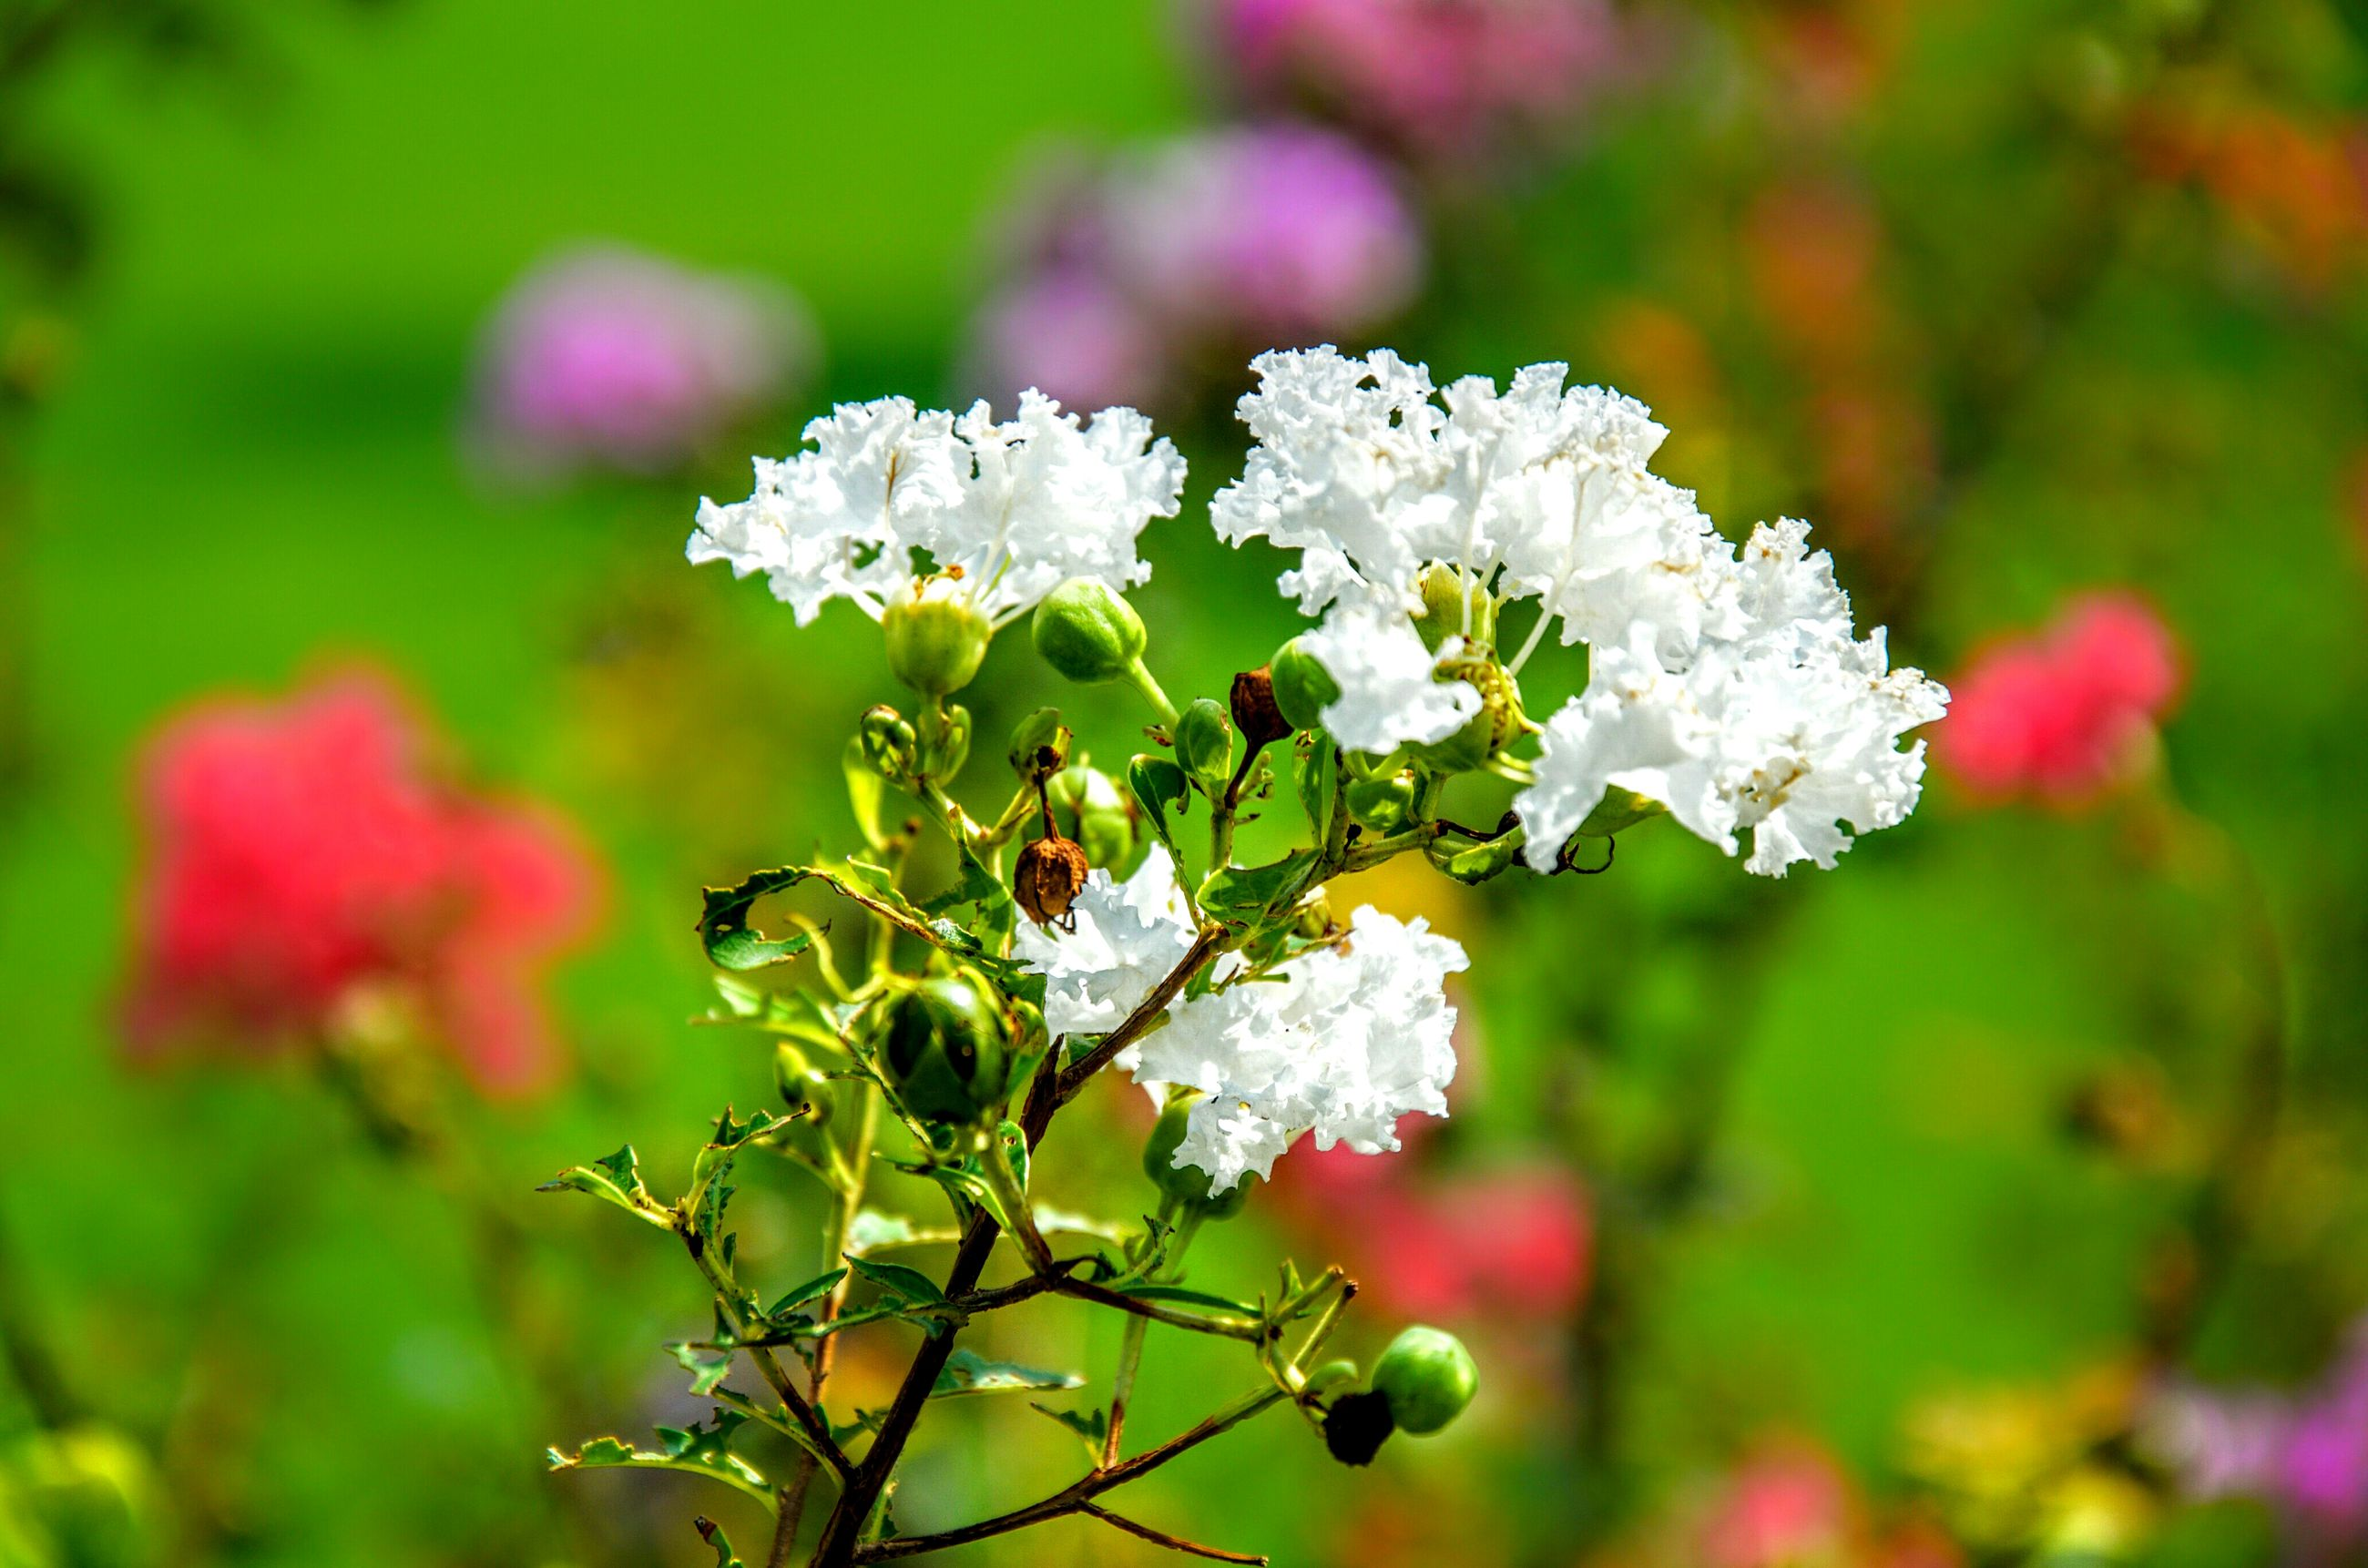 flower, freshness, growth, fragility, focus on foreground, beauty in nature, petal, close-up, nature, white color, flower head, blooming, plant, blossom, in bloom, branch, selective focus, springtime, day, outdoors